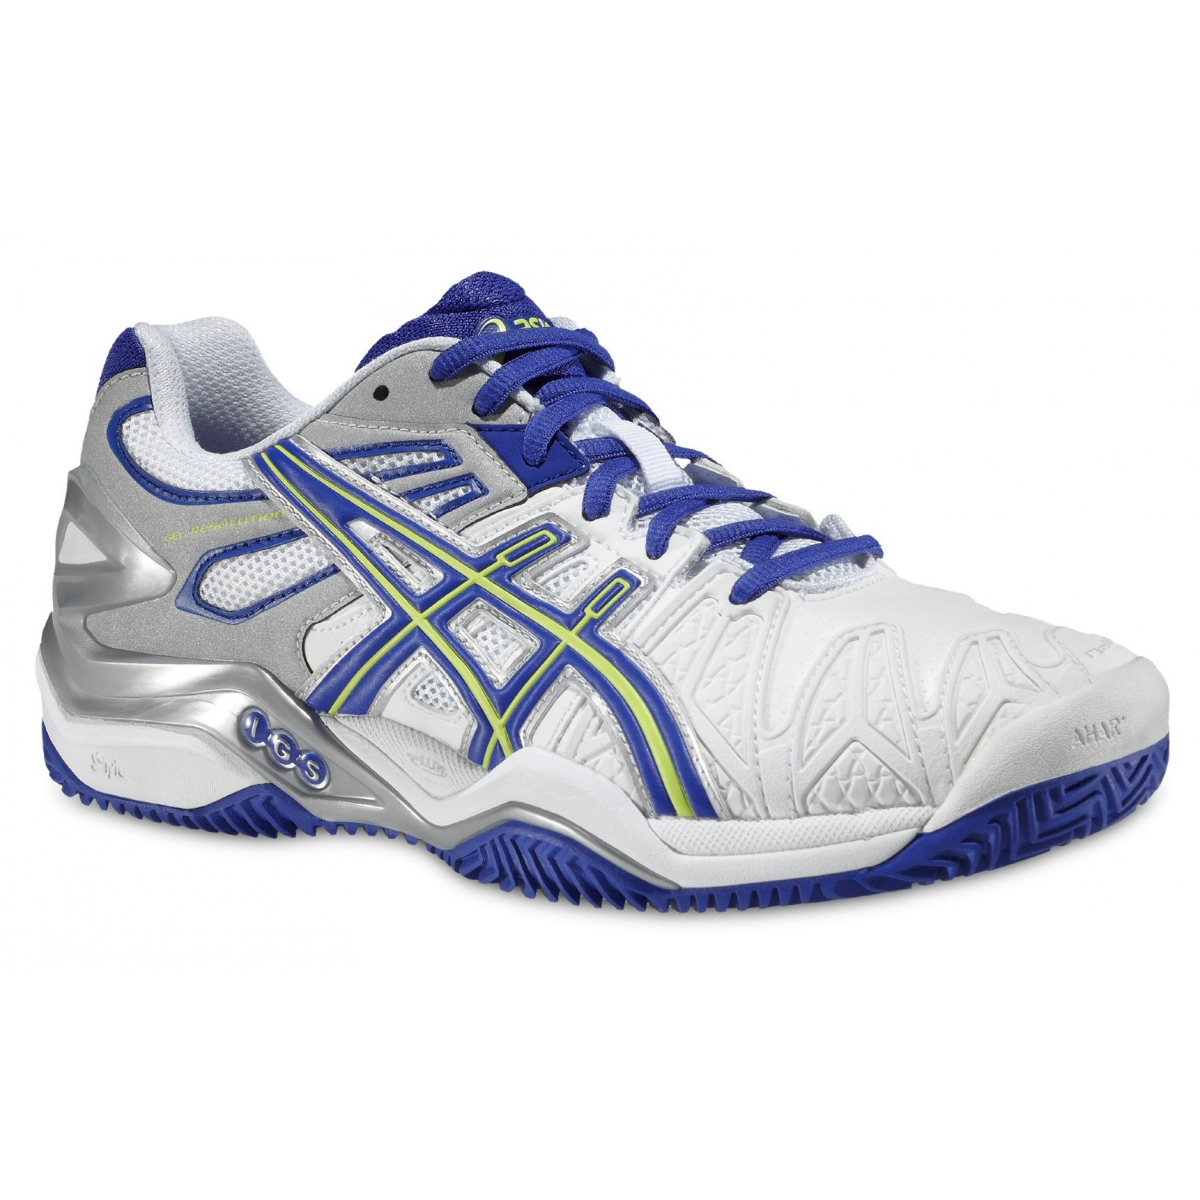 asics gel resolution 5 clay weiss blau tennisschuhe damen versandkostenfrei online bestellen. Black Bedroom Furniture Sets. Home Design Ideas